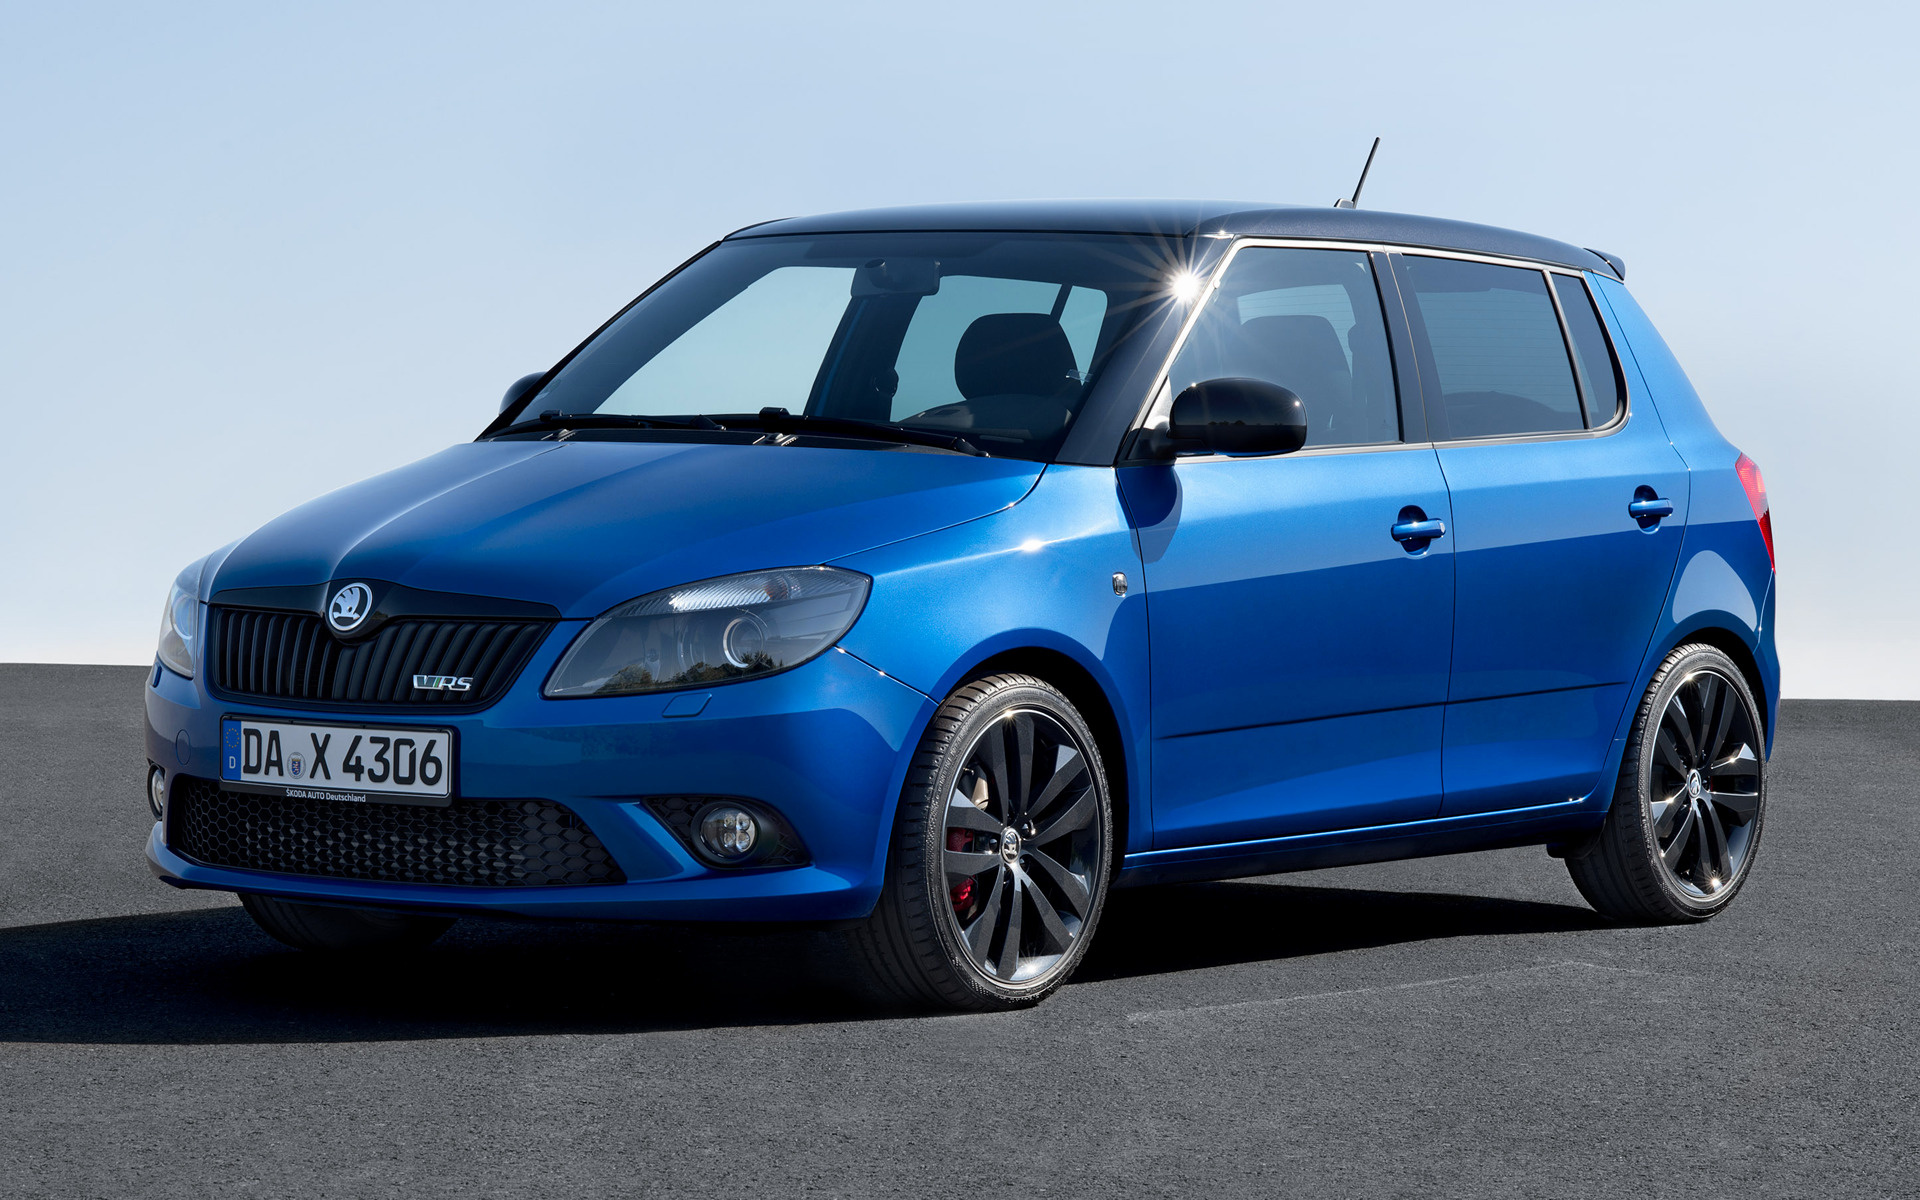 skoda fabia rs 2010 wallpapers and hd images car pixel. Black Bedroom Furniture Sets. Home Design Ideas